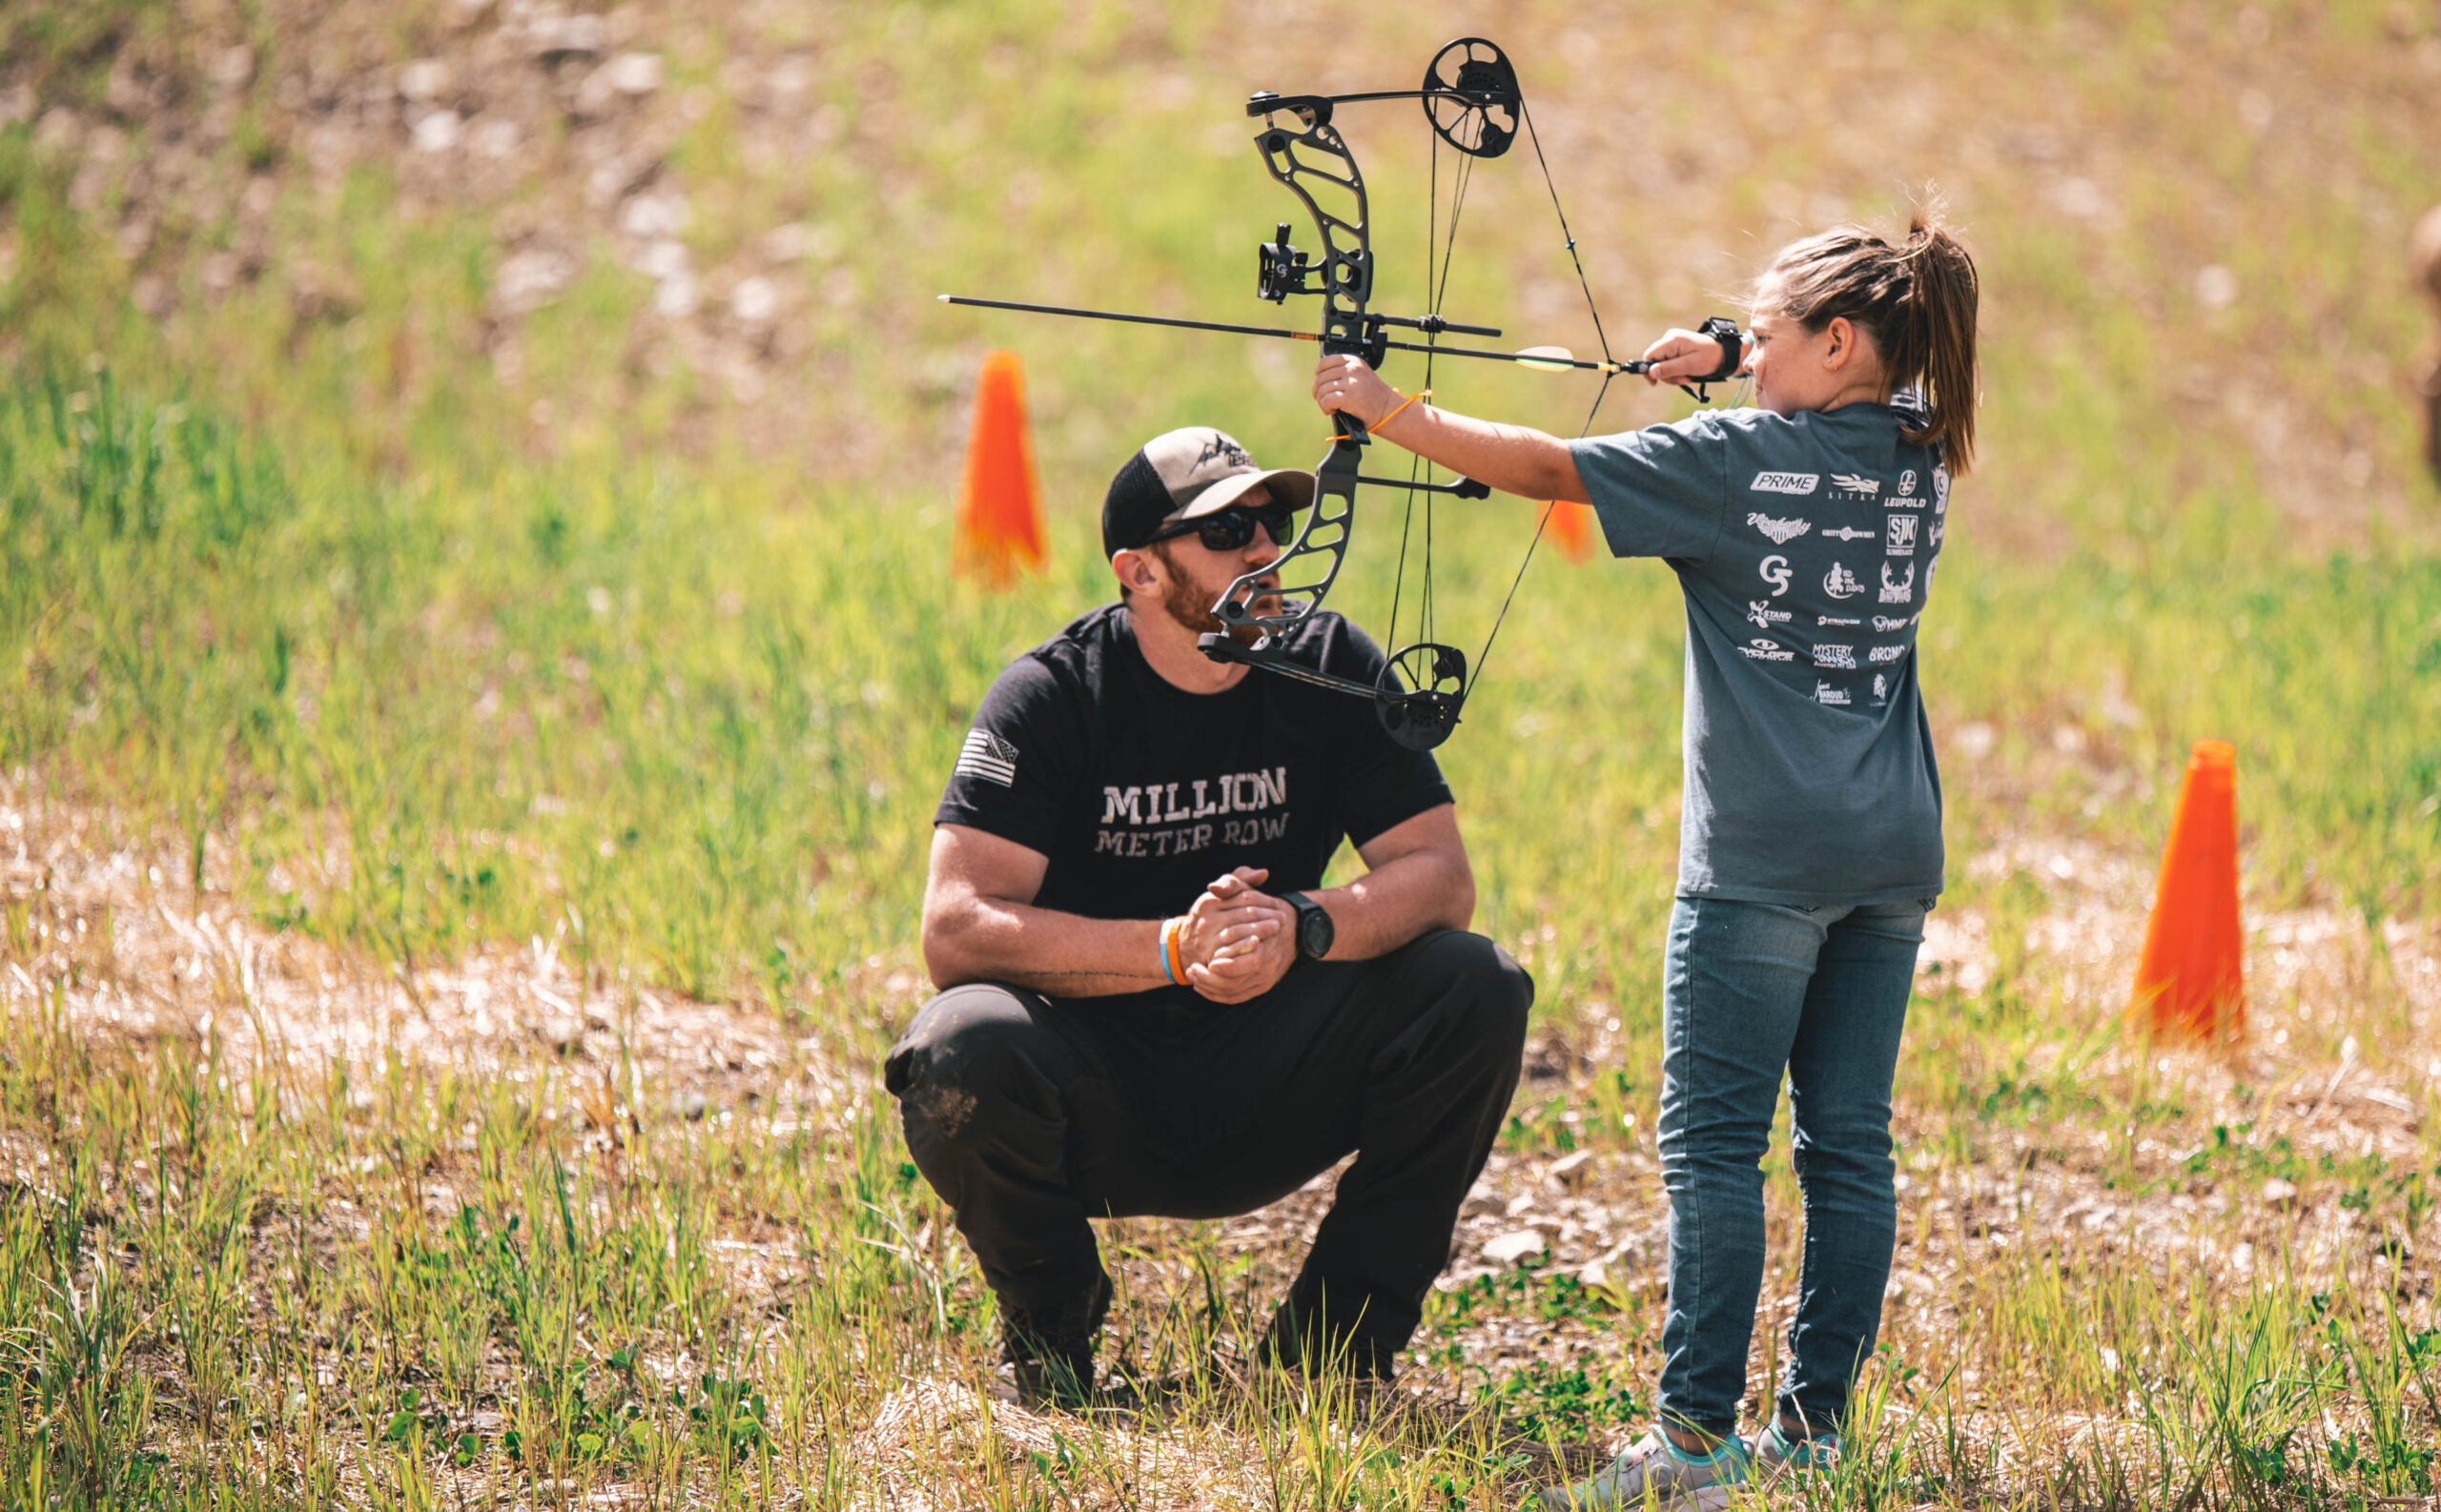 Young girl shoot a Quest Centec bow